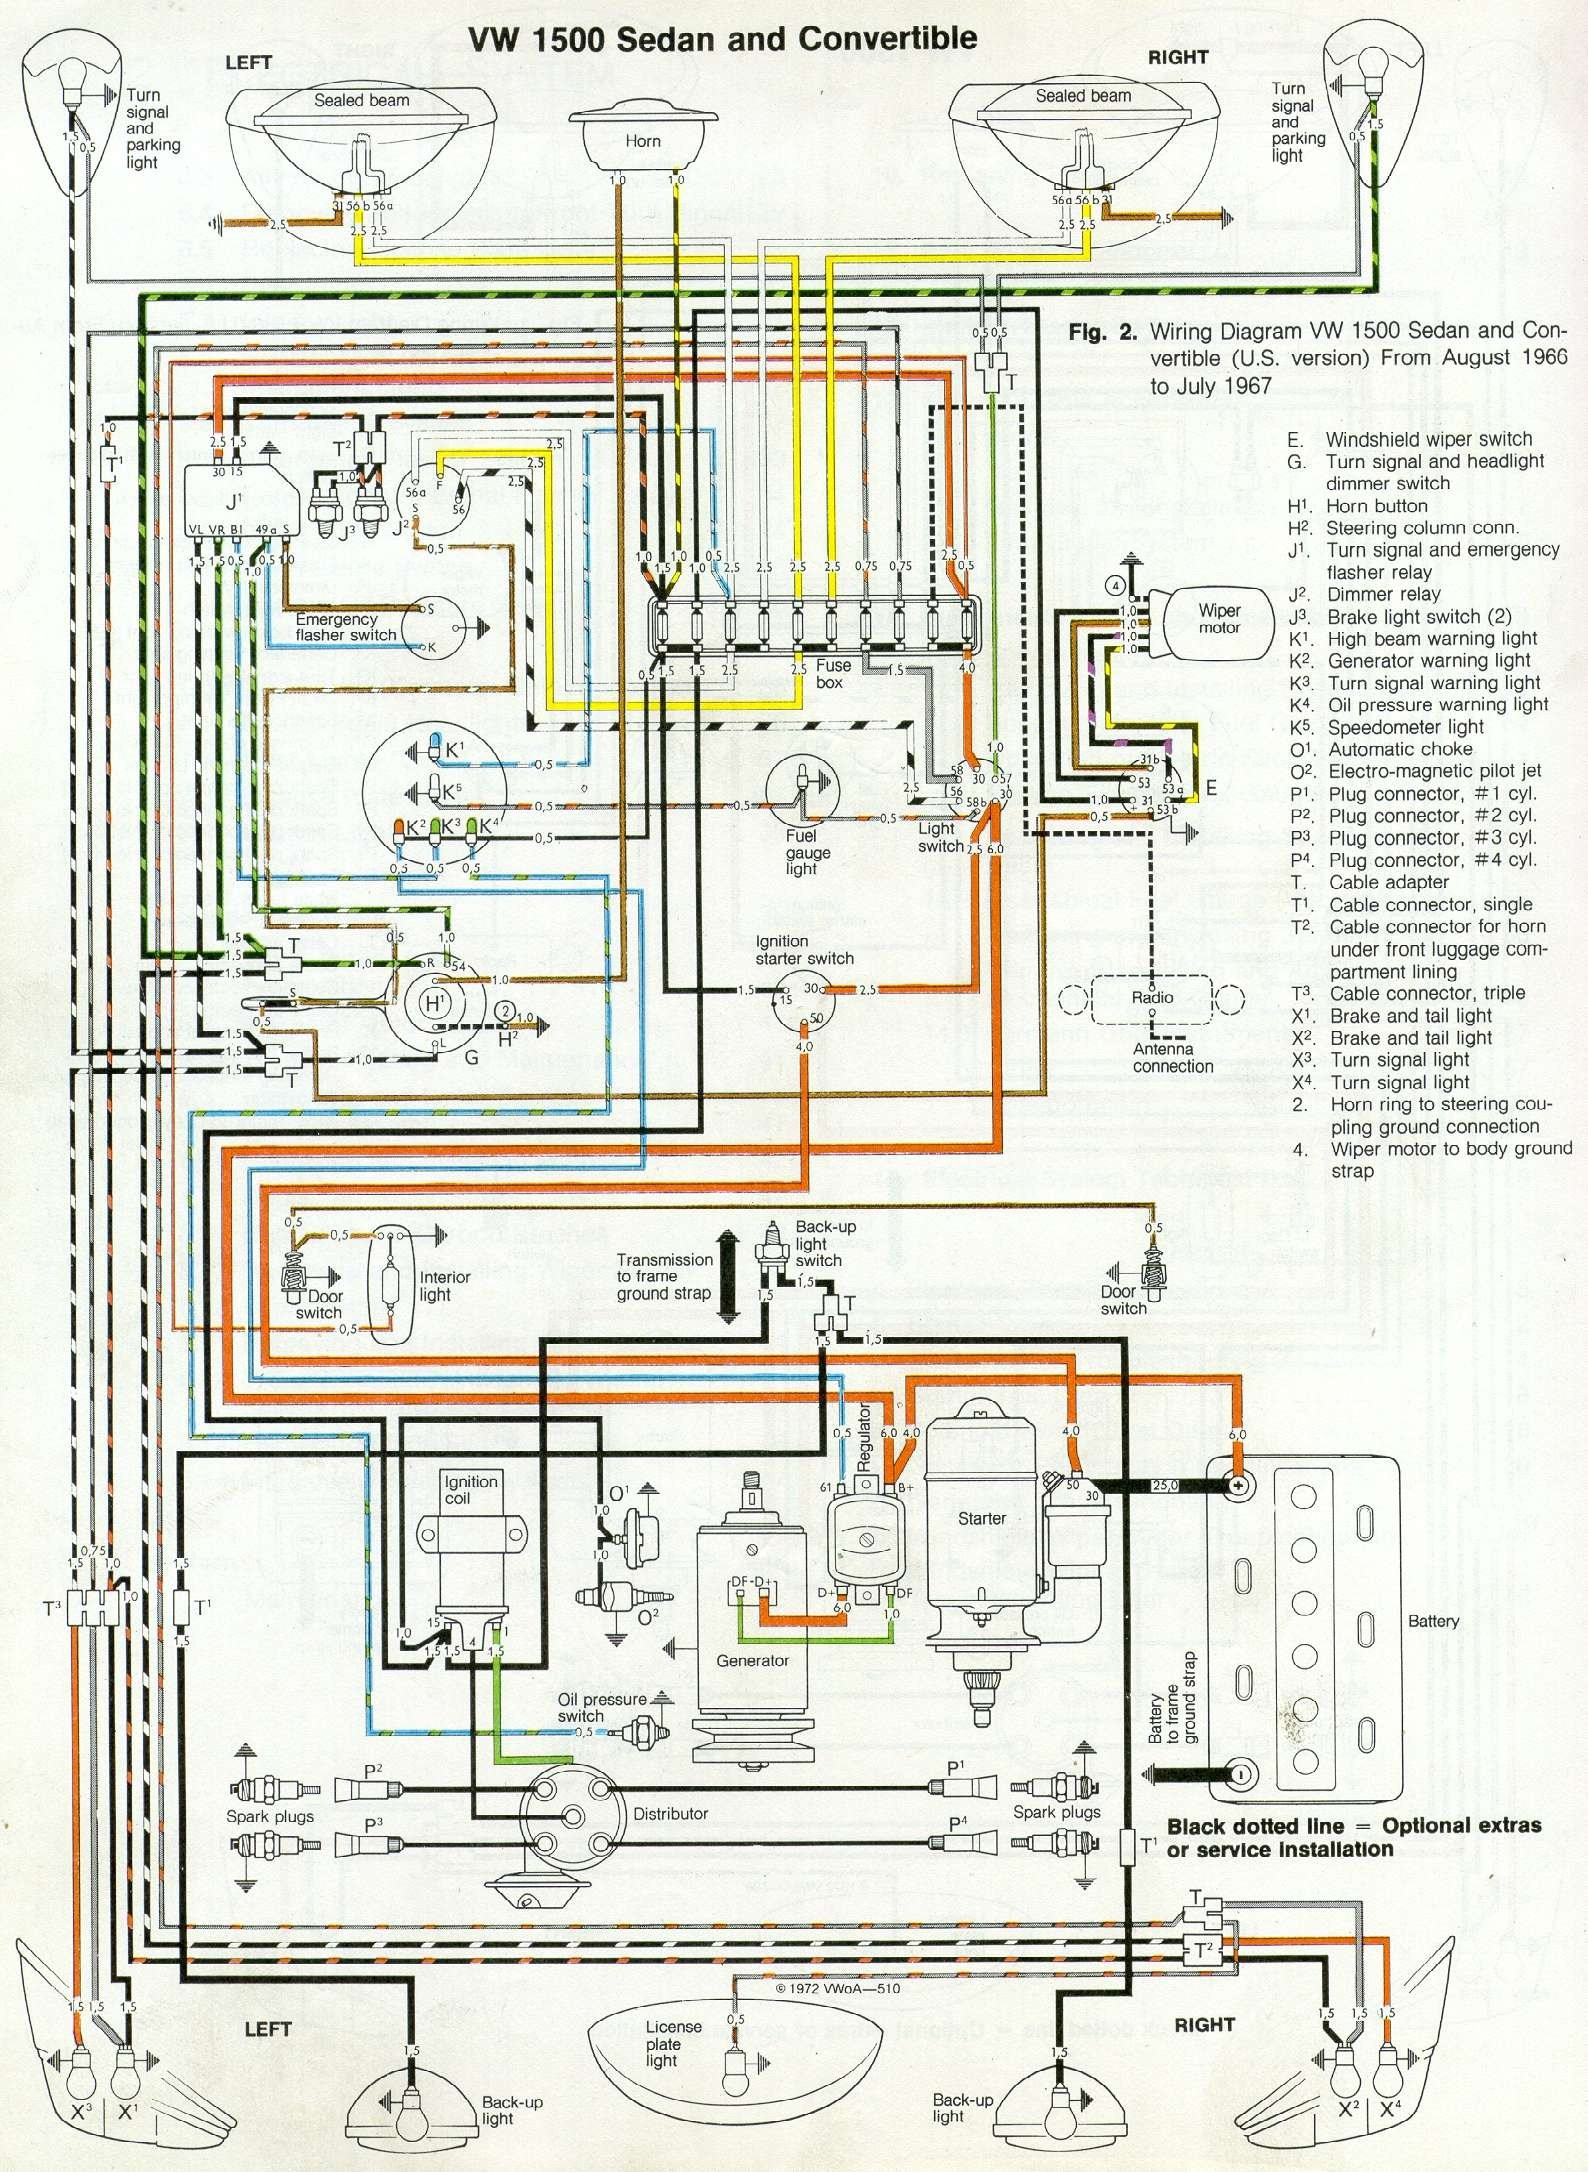 VW Beetle Wiring Digram 67 beetle wiring diagram u s version 1967 vw beetle vw beetle diagrams at virtualis.co